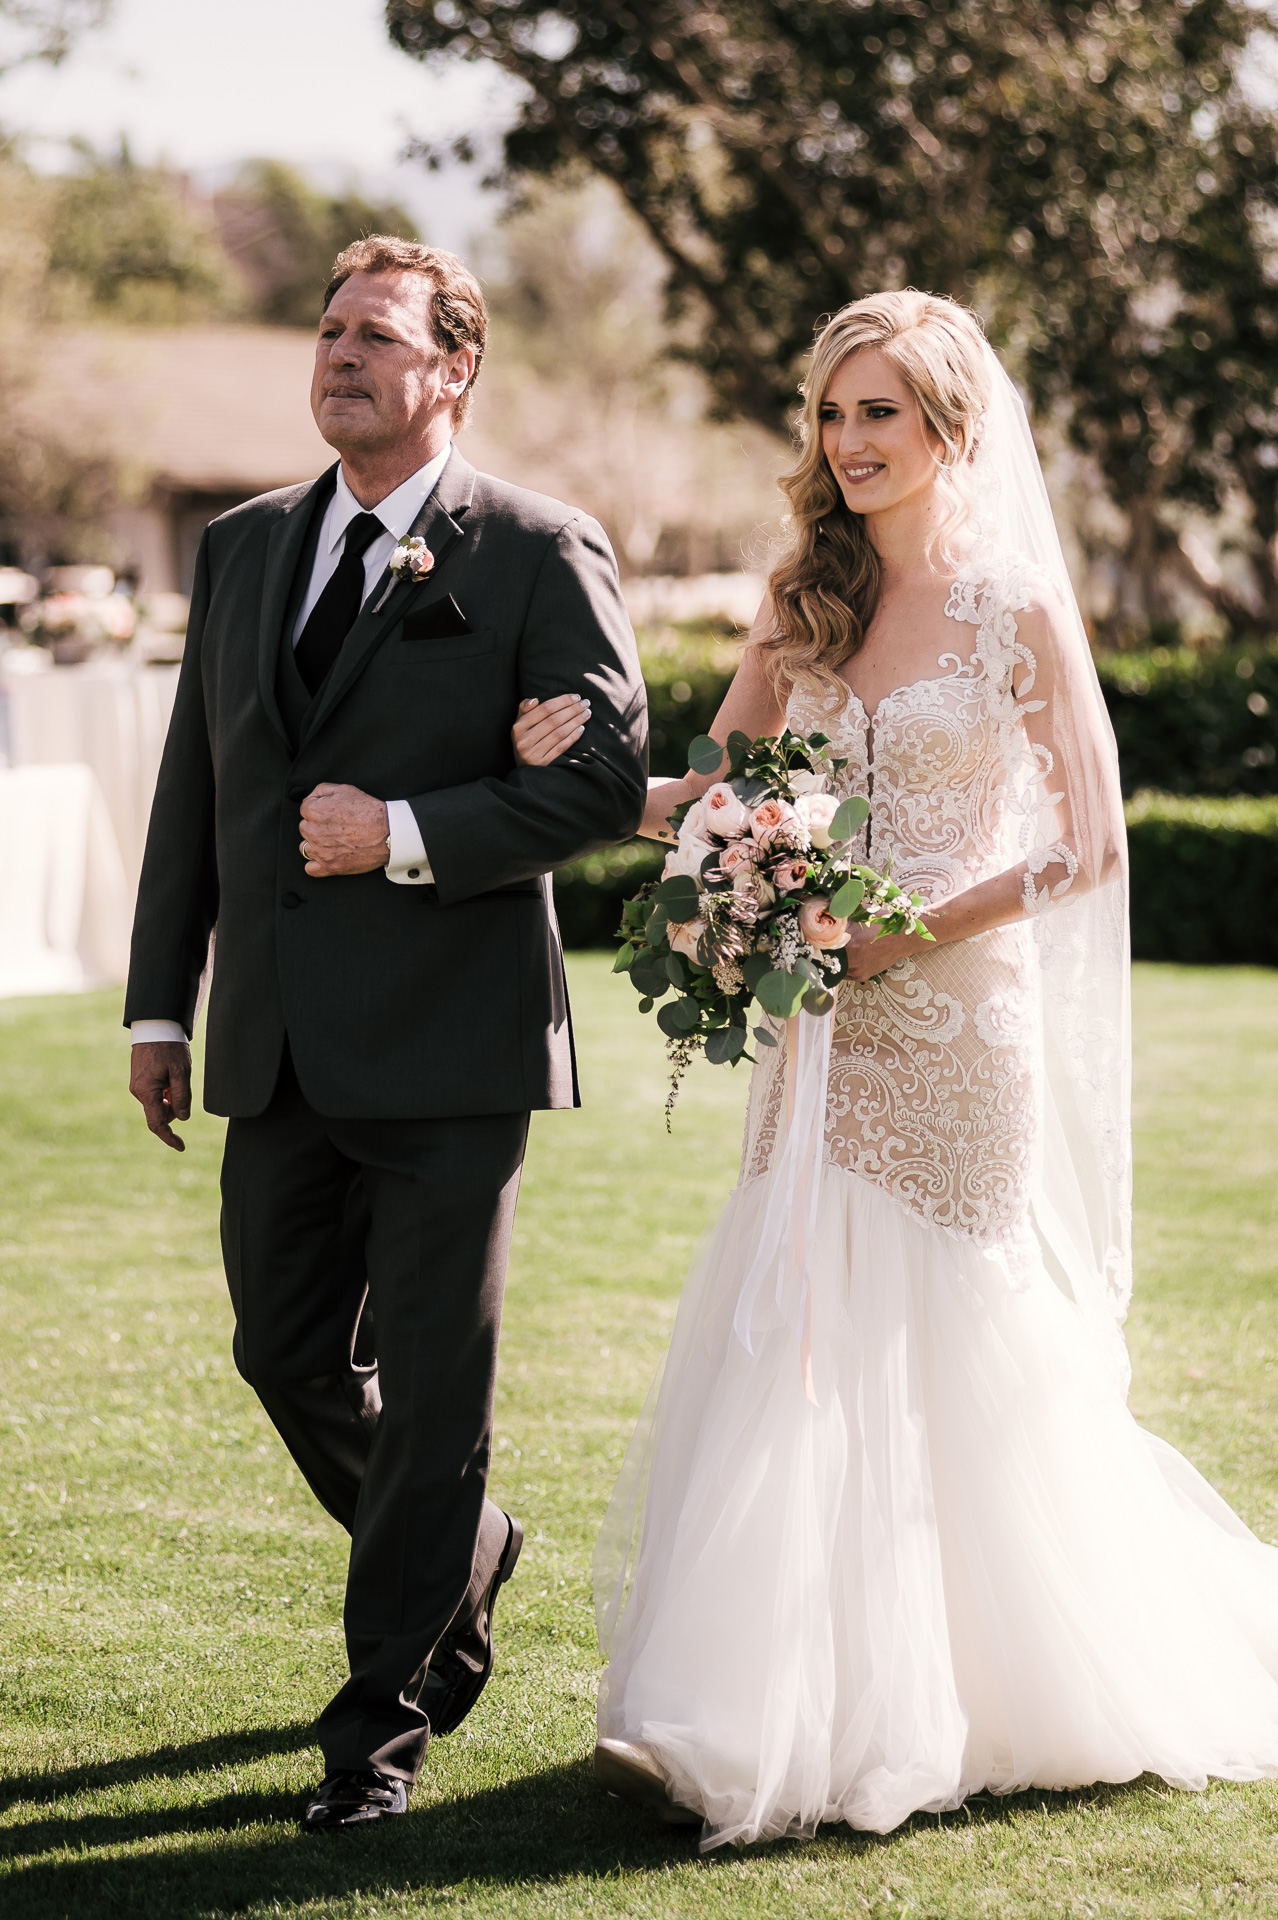 father walks hes daughter down the asile at her wedding at the Twin Oaks Golf Course in San Marcos, San Diegos premier wedding venue